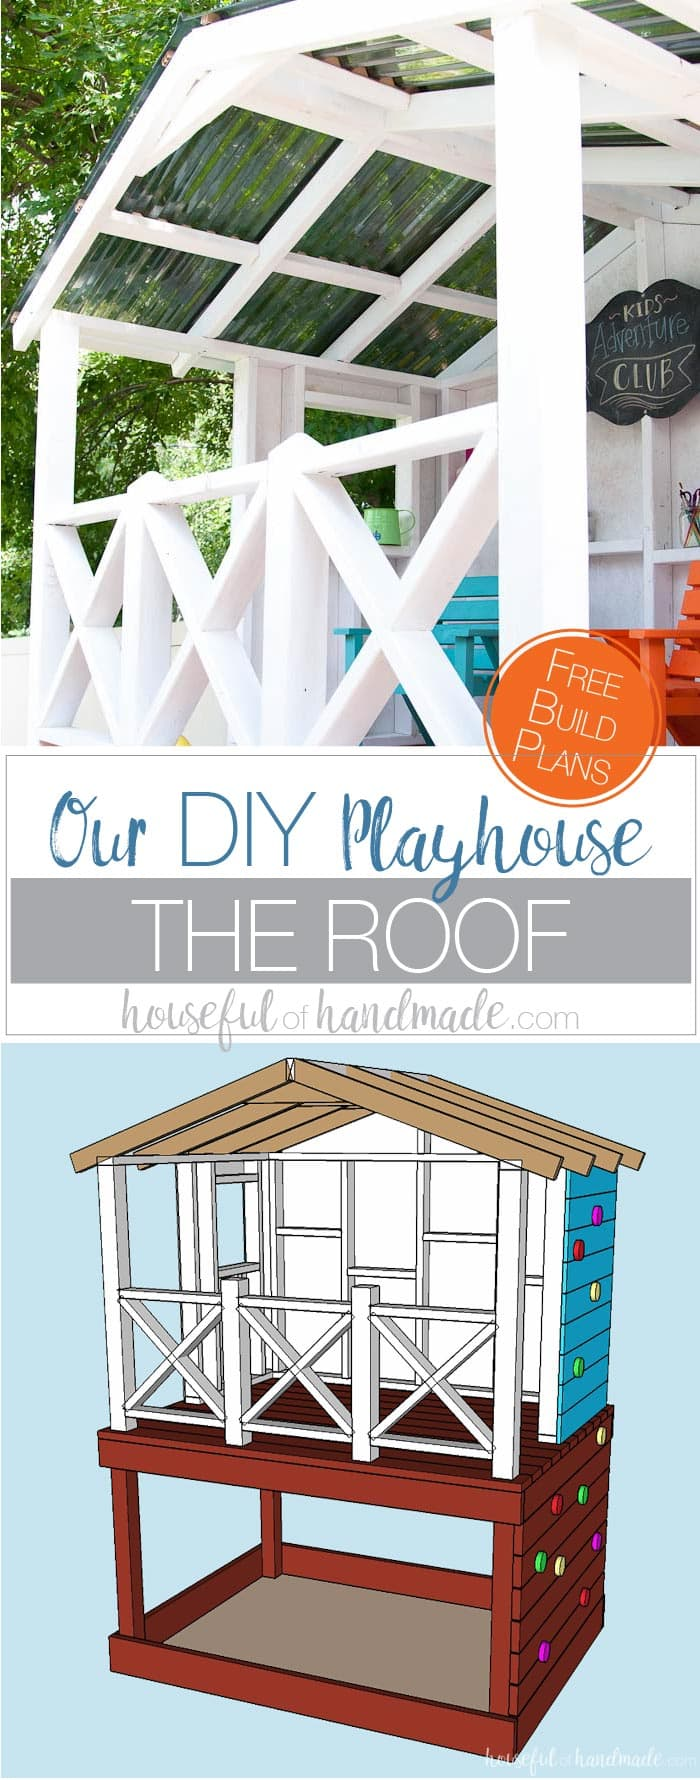 Build The Perfect Outdoor Playhouse For The Kids. Get Hours Of Imaginative  Play With This